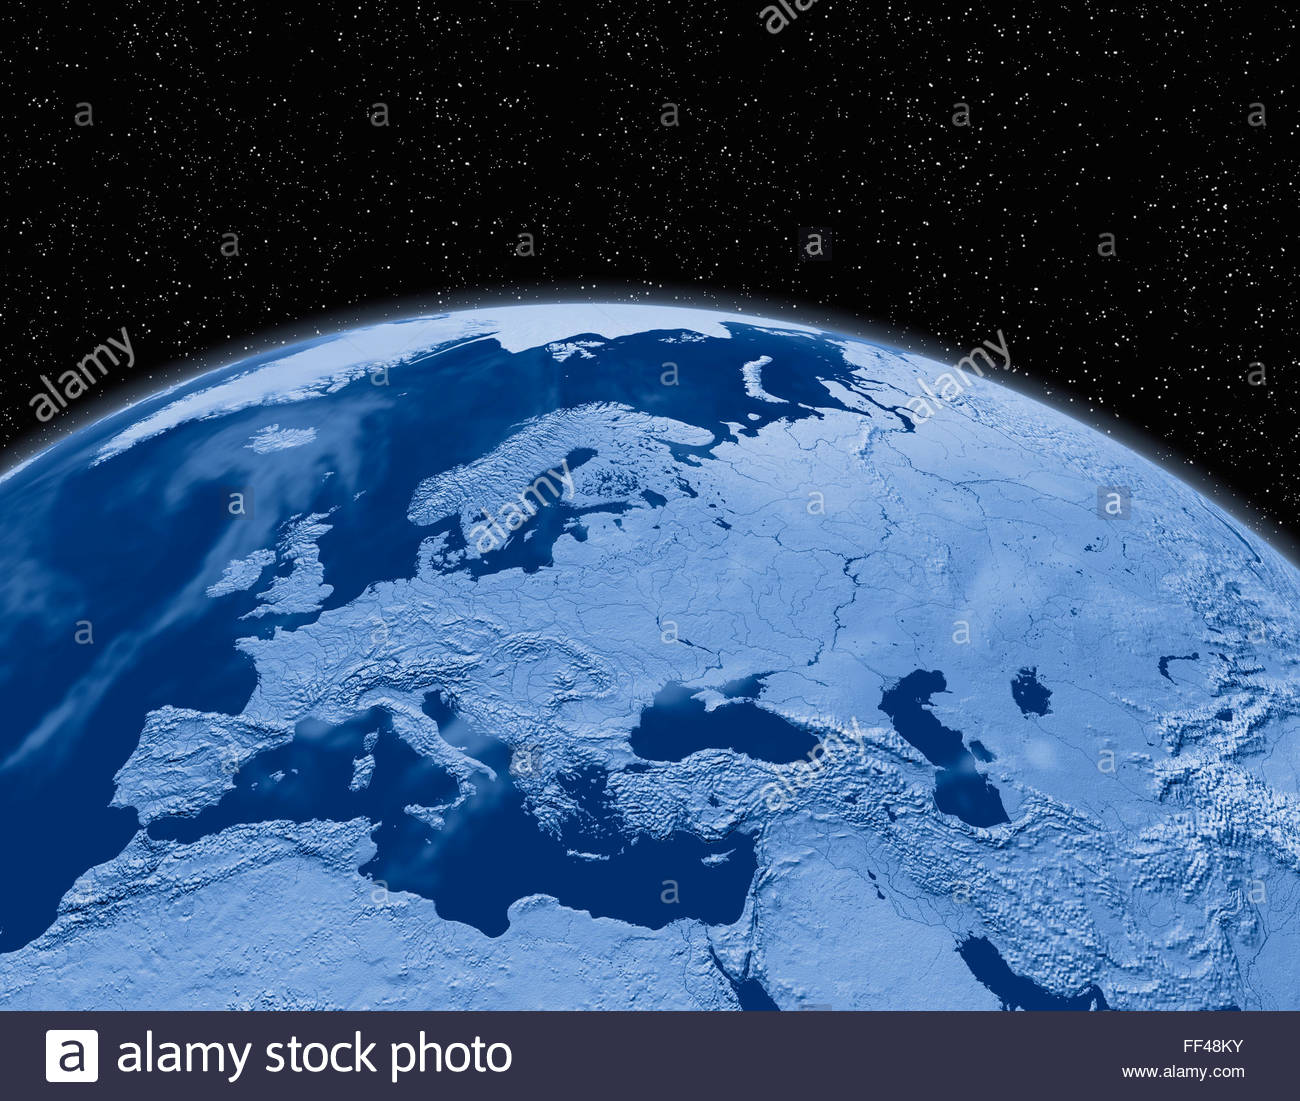 Simulated satellite view of part of the earth from space europe simulated satellite view of part of the earth from space europe world map space planet globe terrain relief sphere continent gumiabroncs Gallery